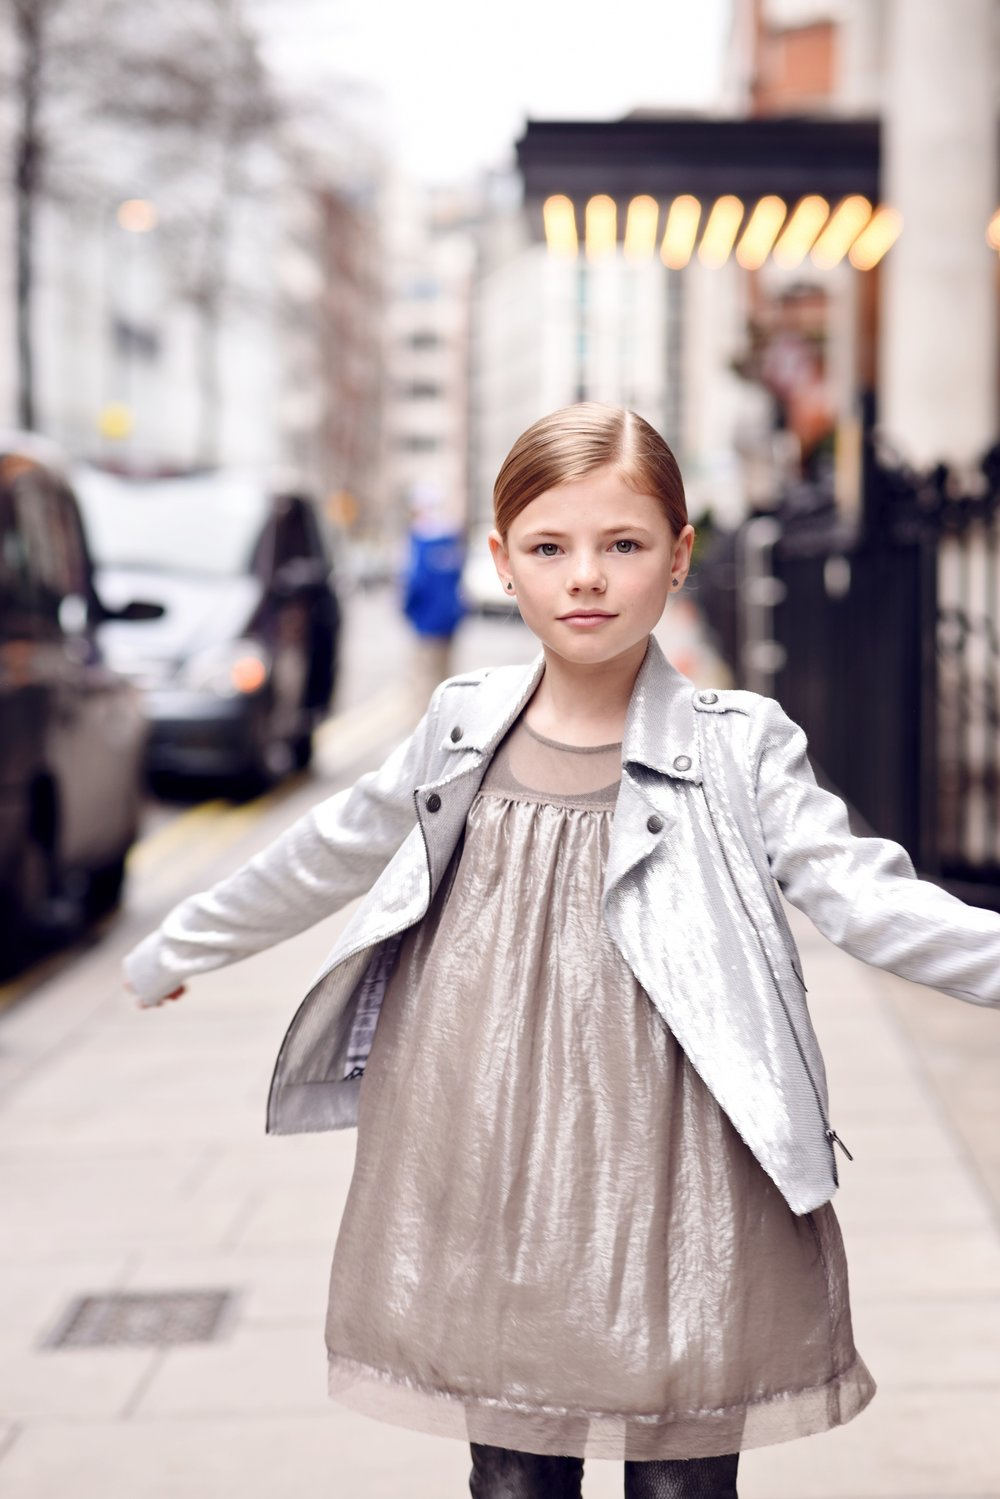 Enfant+Street+Style+by+Gina+Kim+Photography-7.jpeg